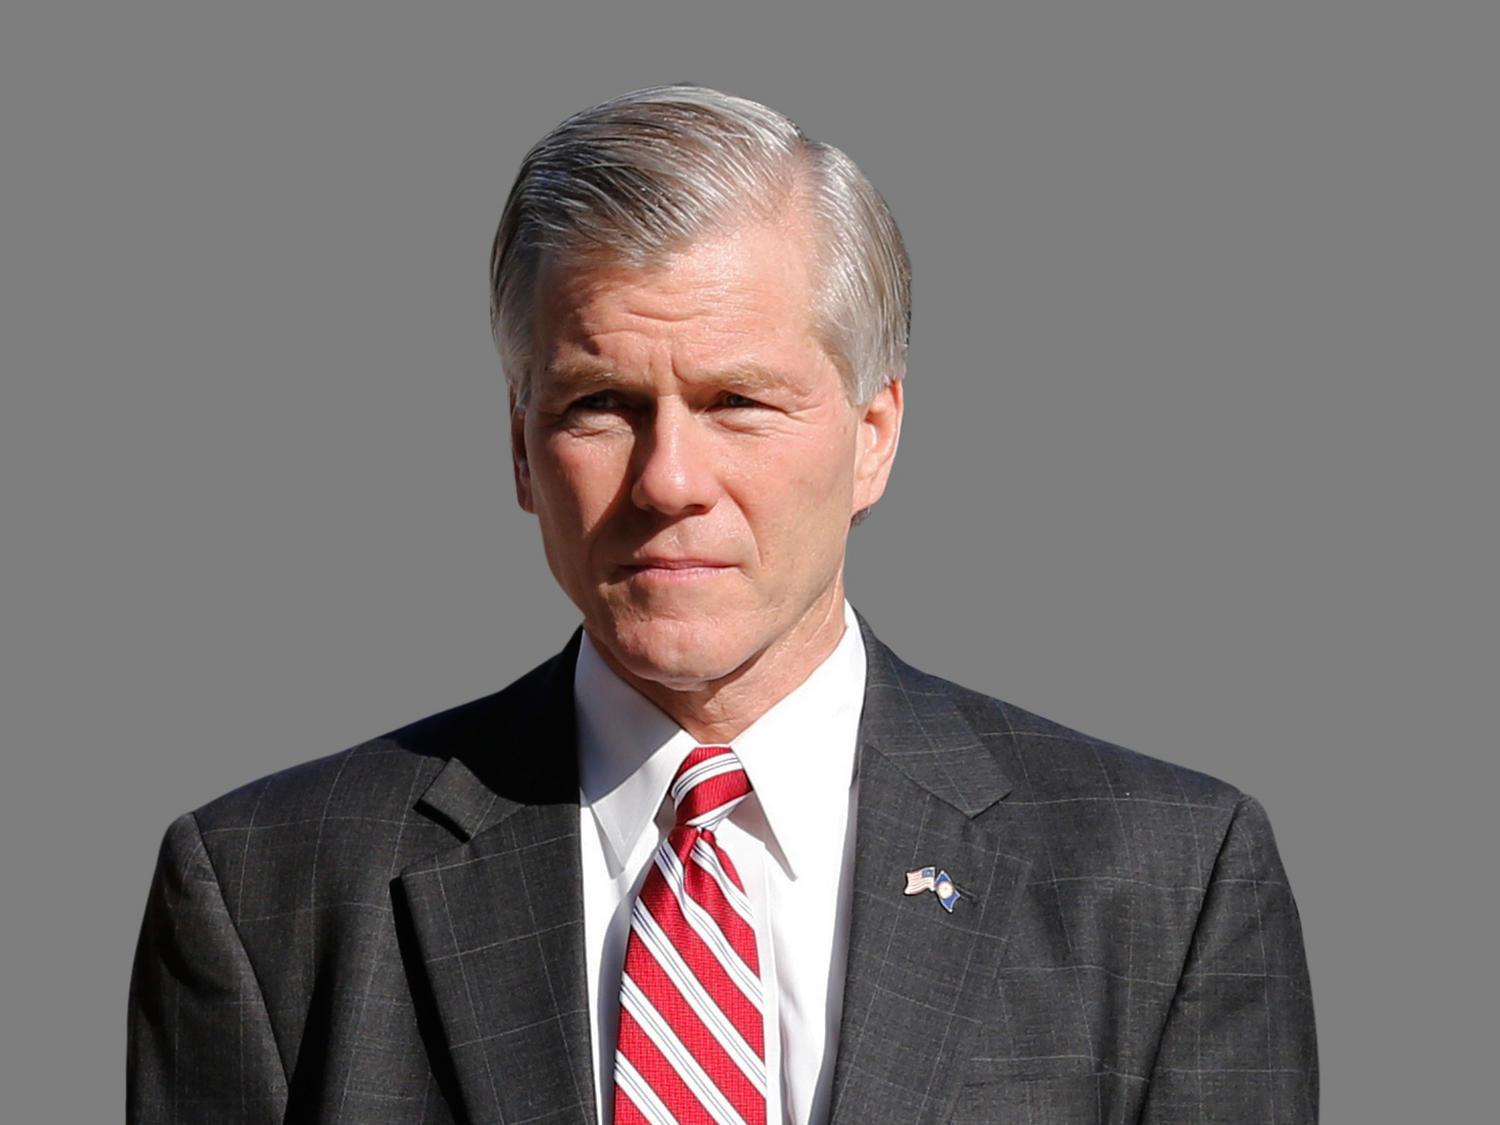 bob mcdonnell thesis washington post Testing the president's reach by ej dionne jr september 17, 2009  this is a race between barack obama's spending and bob mcdonnell's thesis  he is a washington post columnist,.